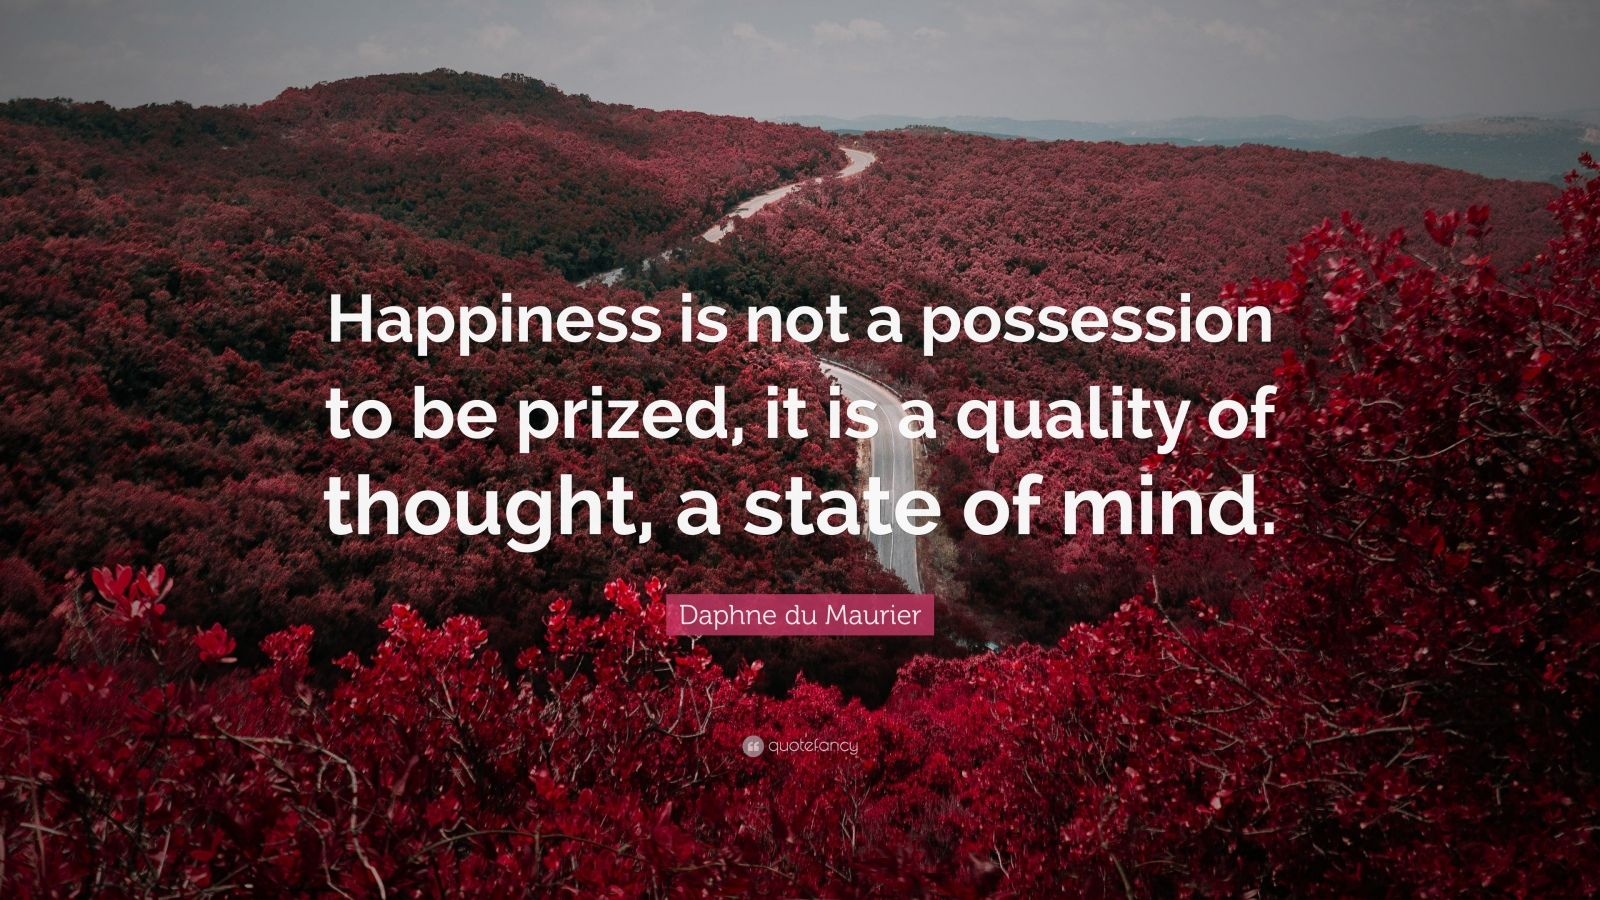 "Daphne du Maurier Quote: ""Happiness is not a possession to be prized, it is a quality of thought, a state of mind."""